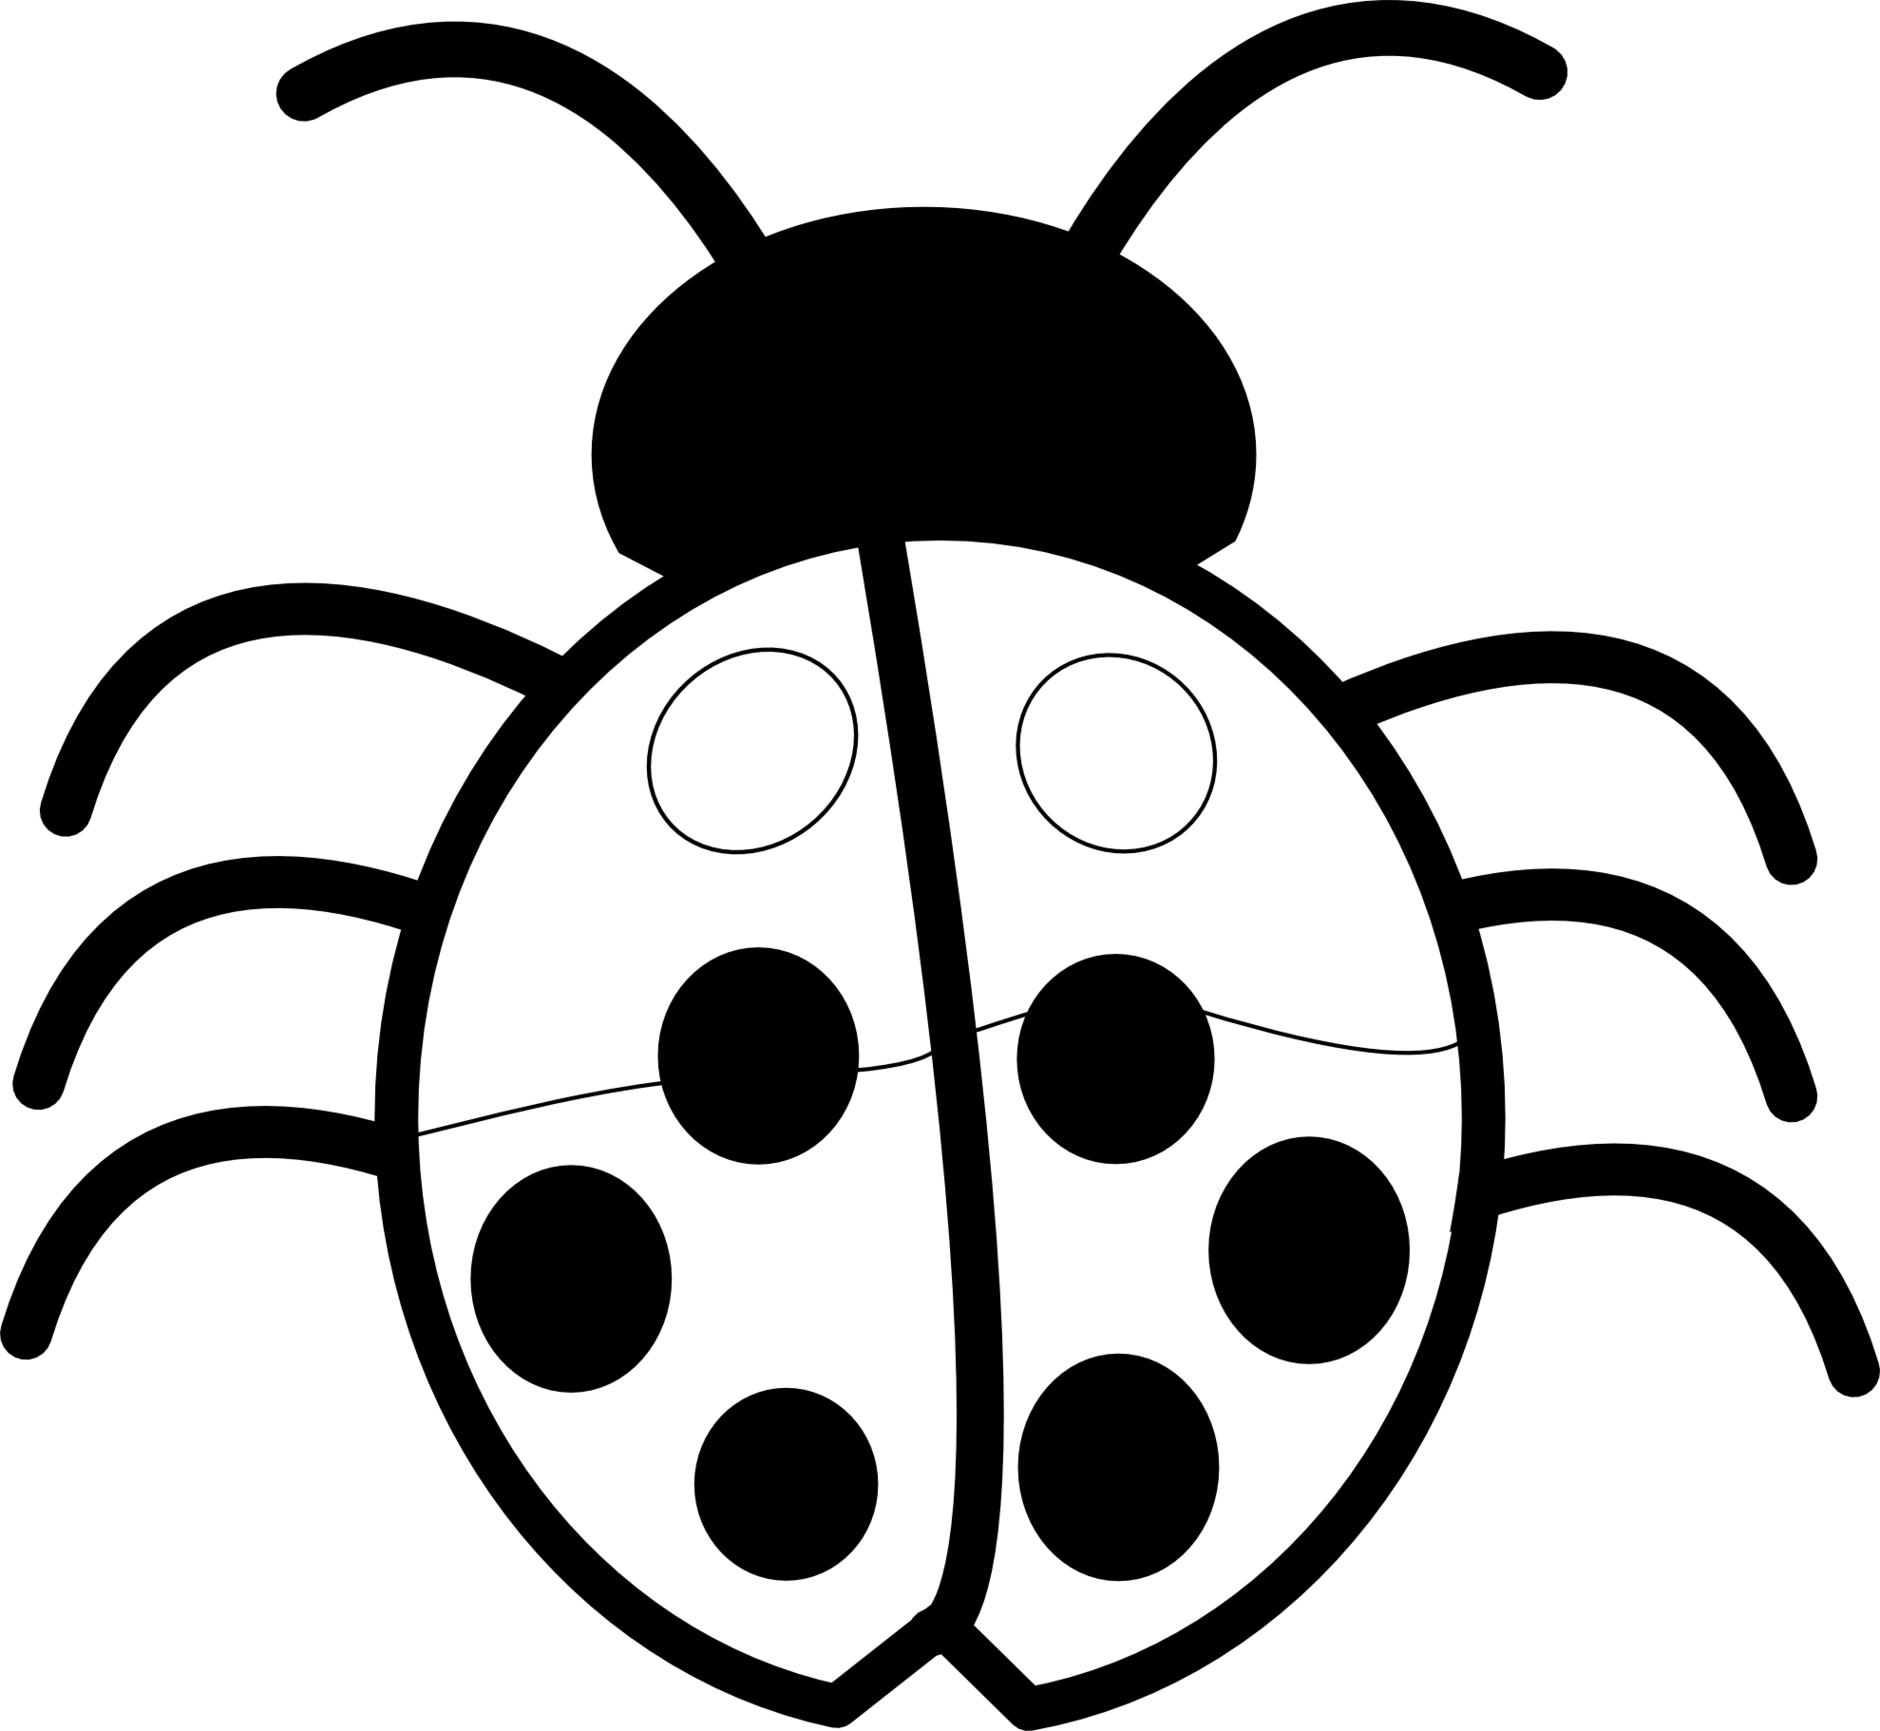 Bug Eye Smile Black And White Clipart